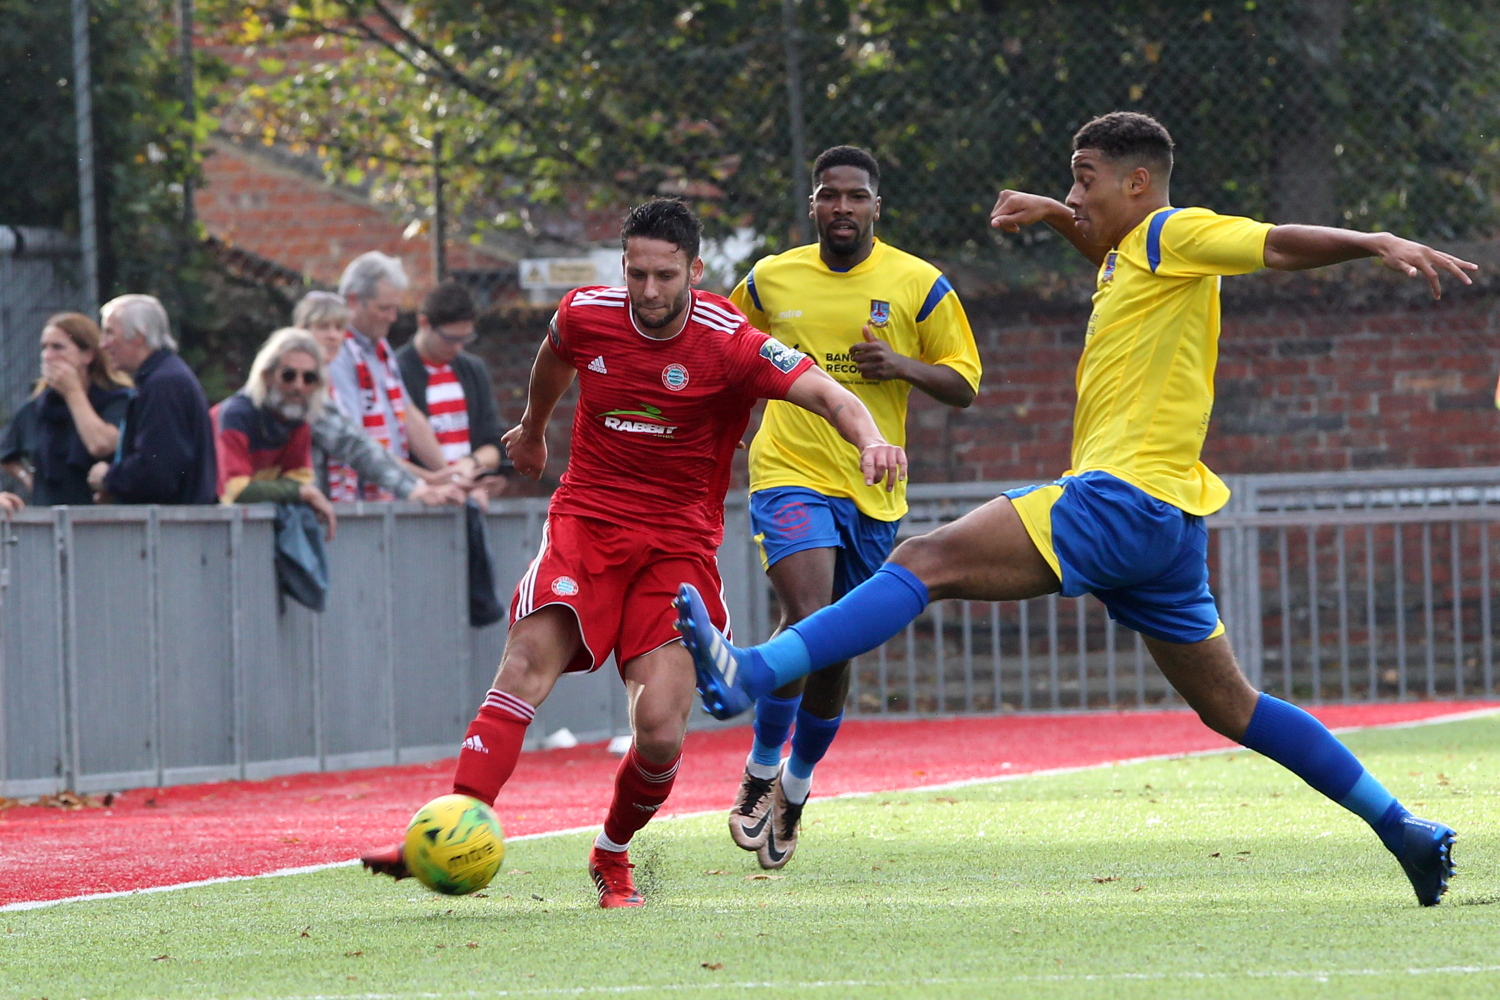 Read the full article - FIVE FACTS: Kingstonian